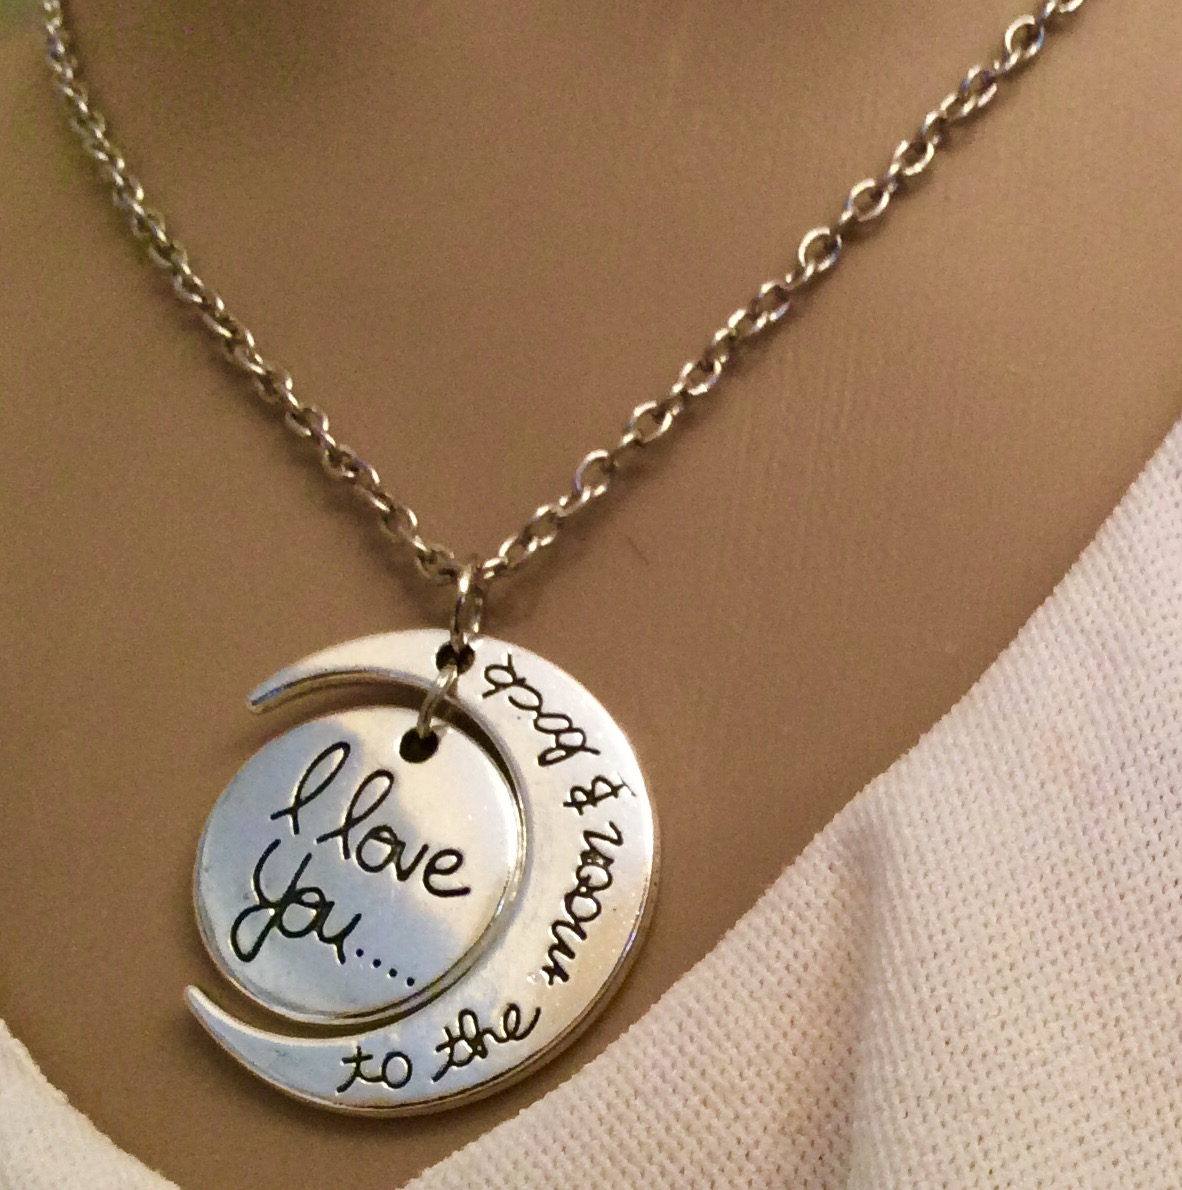 Necklace i love you to the moon and back alert me bands the circle pendant is engraved with i love you and sits perfectly inside the crescent moon pendant engraved with to the moon and back mozeypictures Images